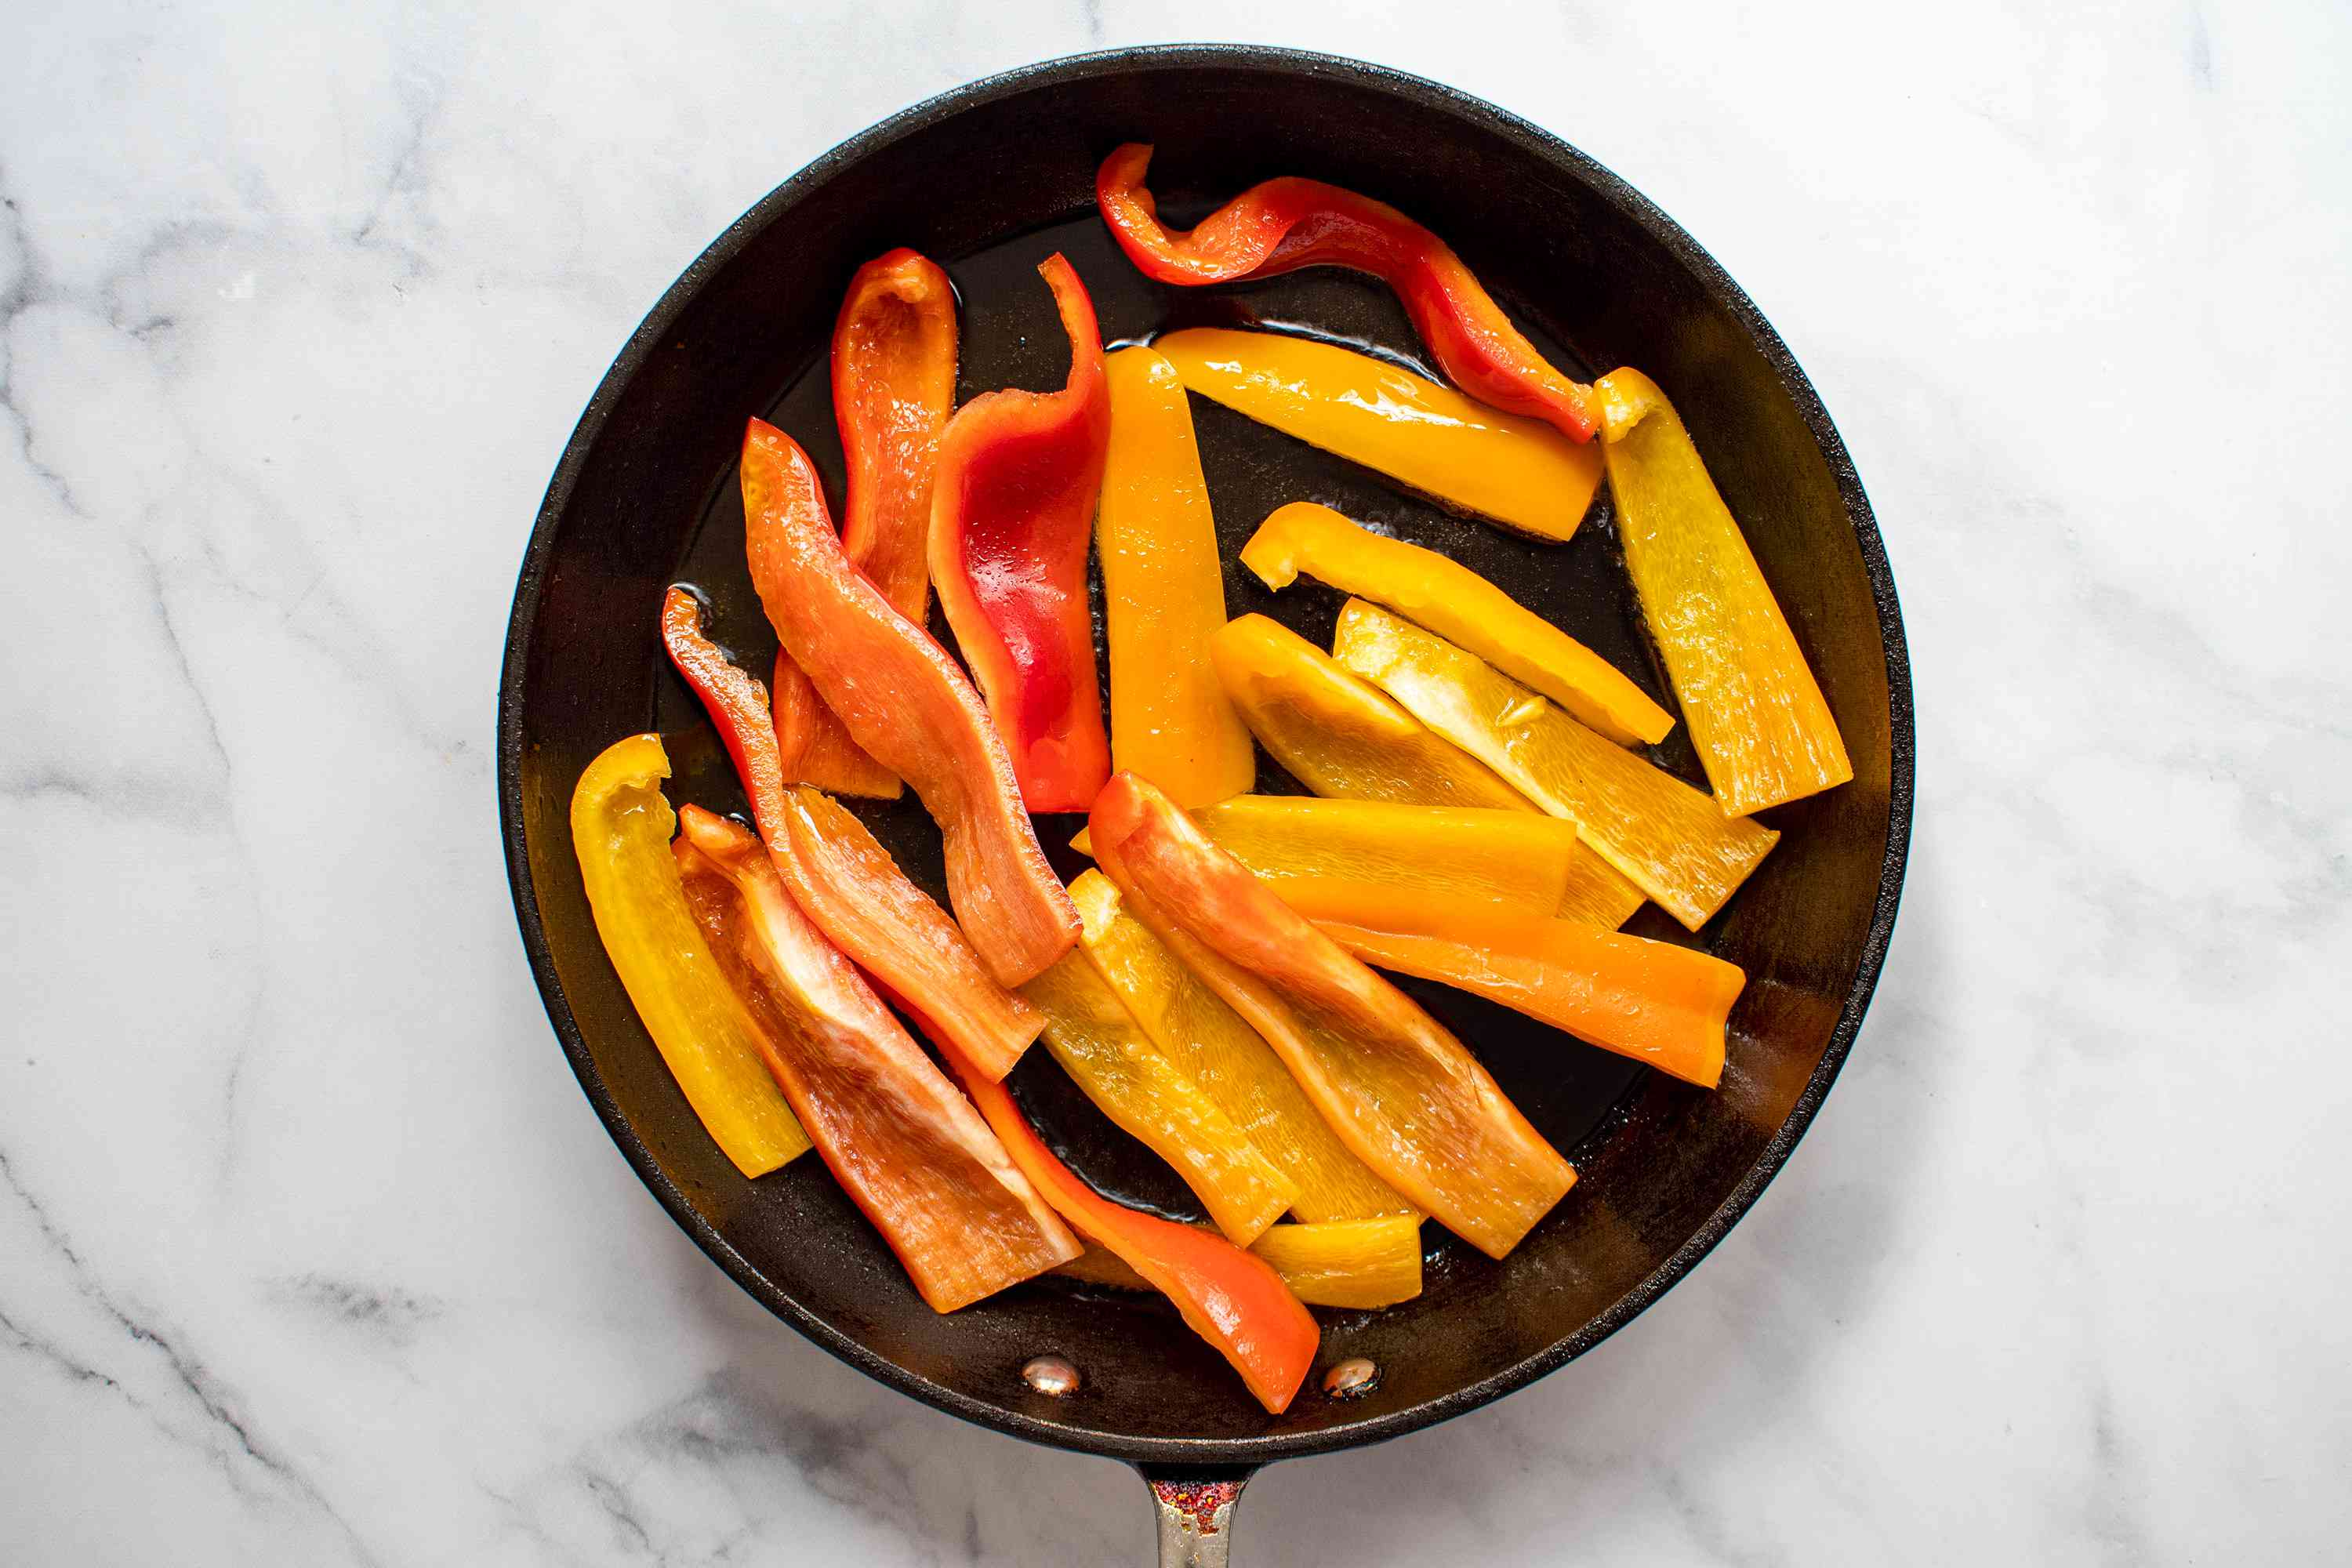 add the sliced peppers to the skillet